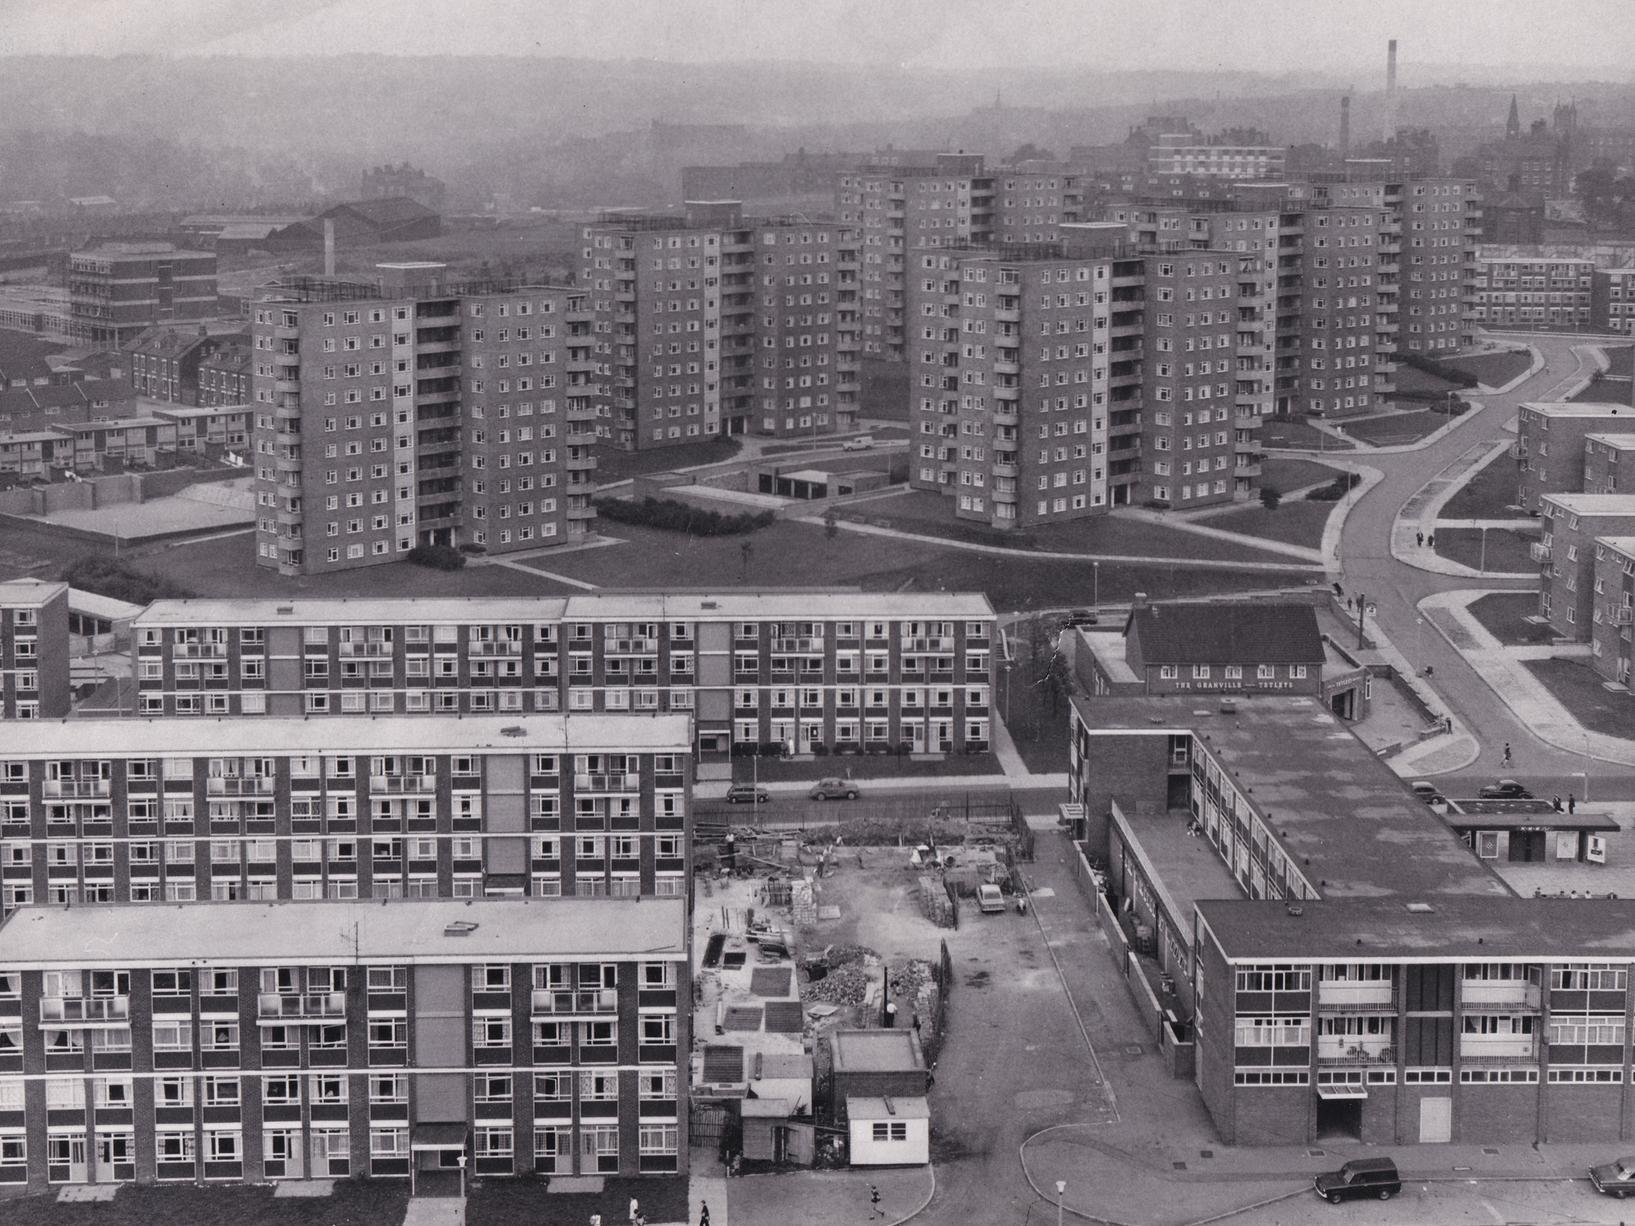 12 memories of life in Leeds high rise flats down the decades